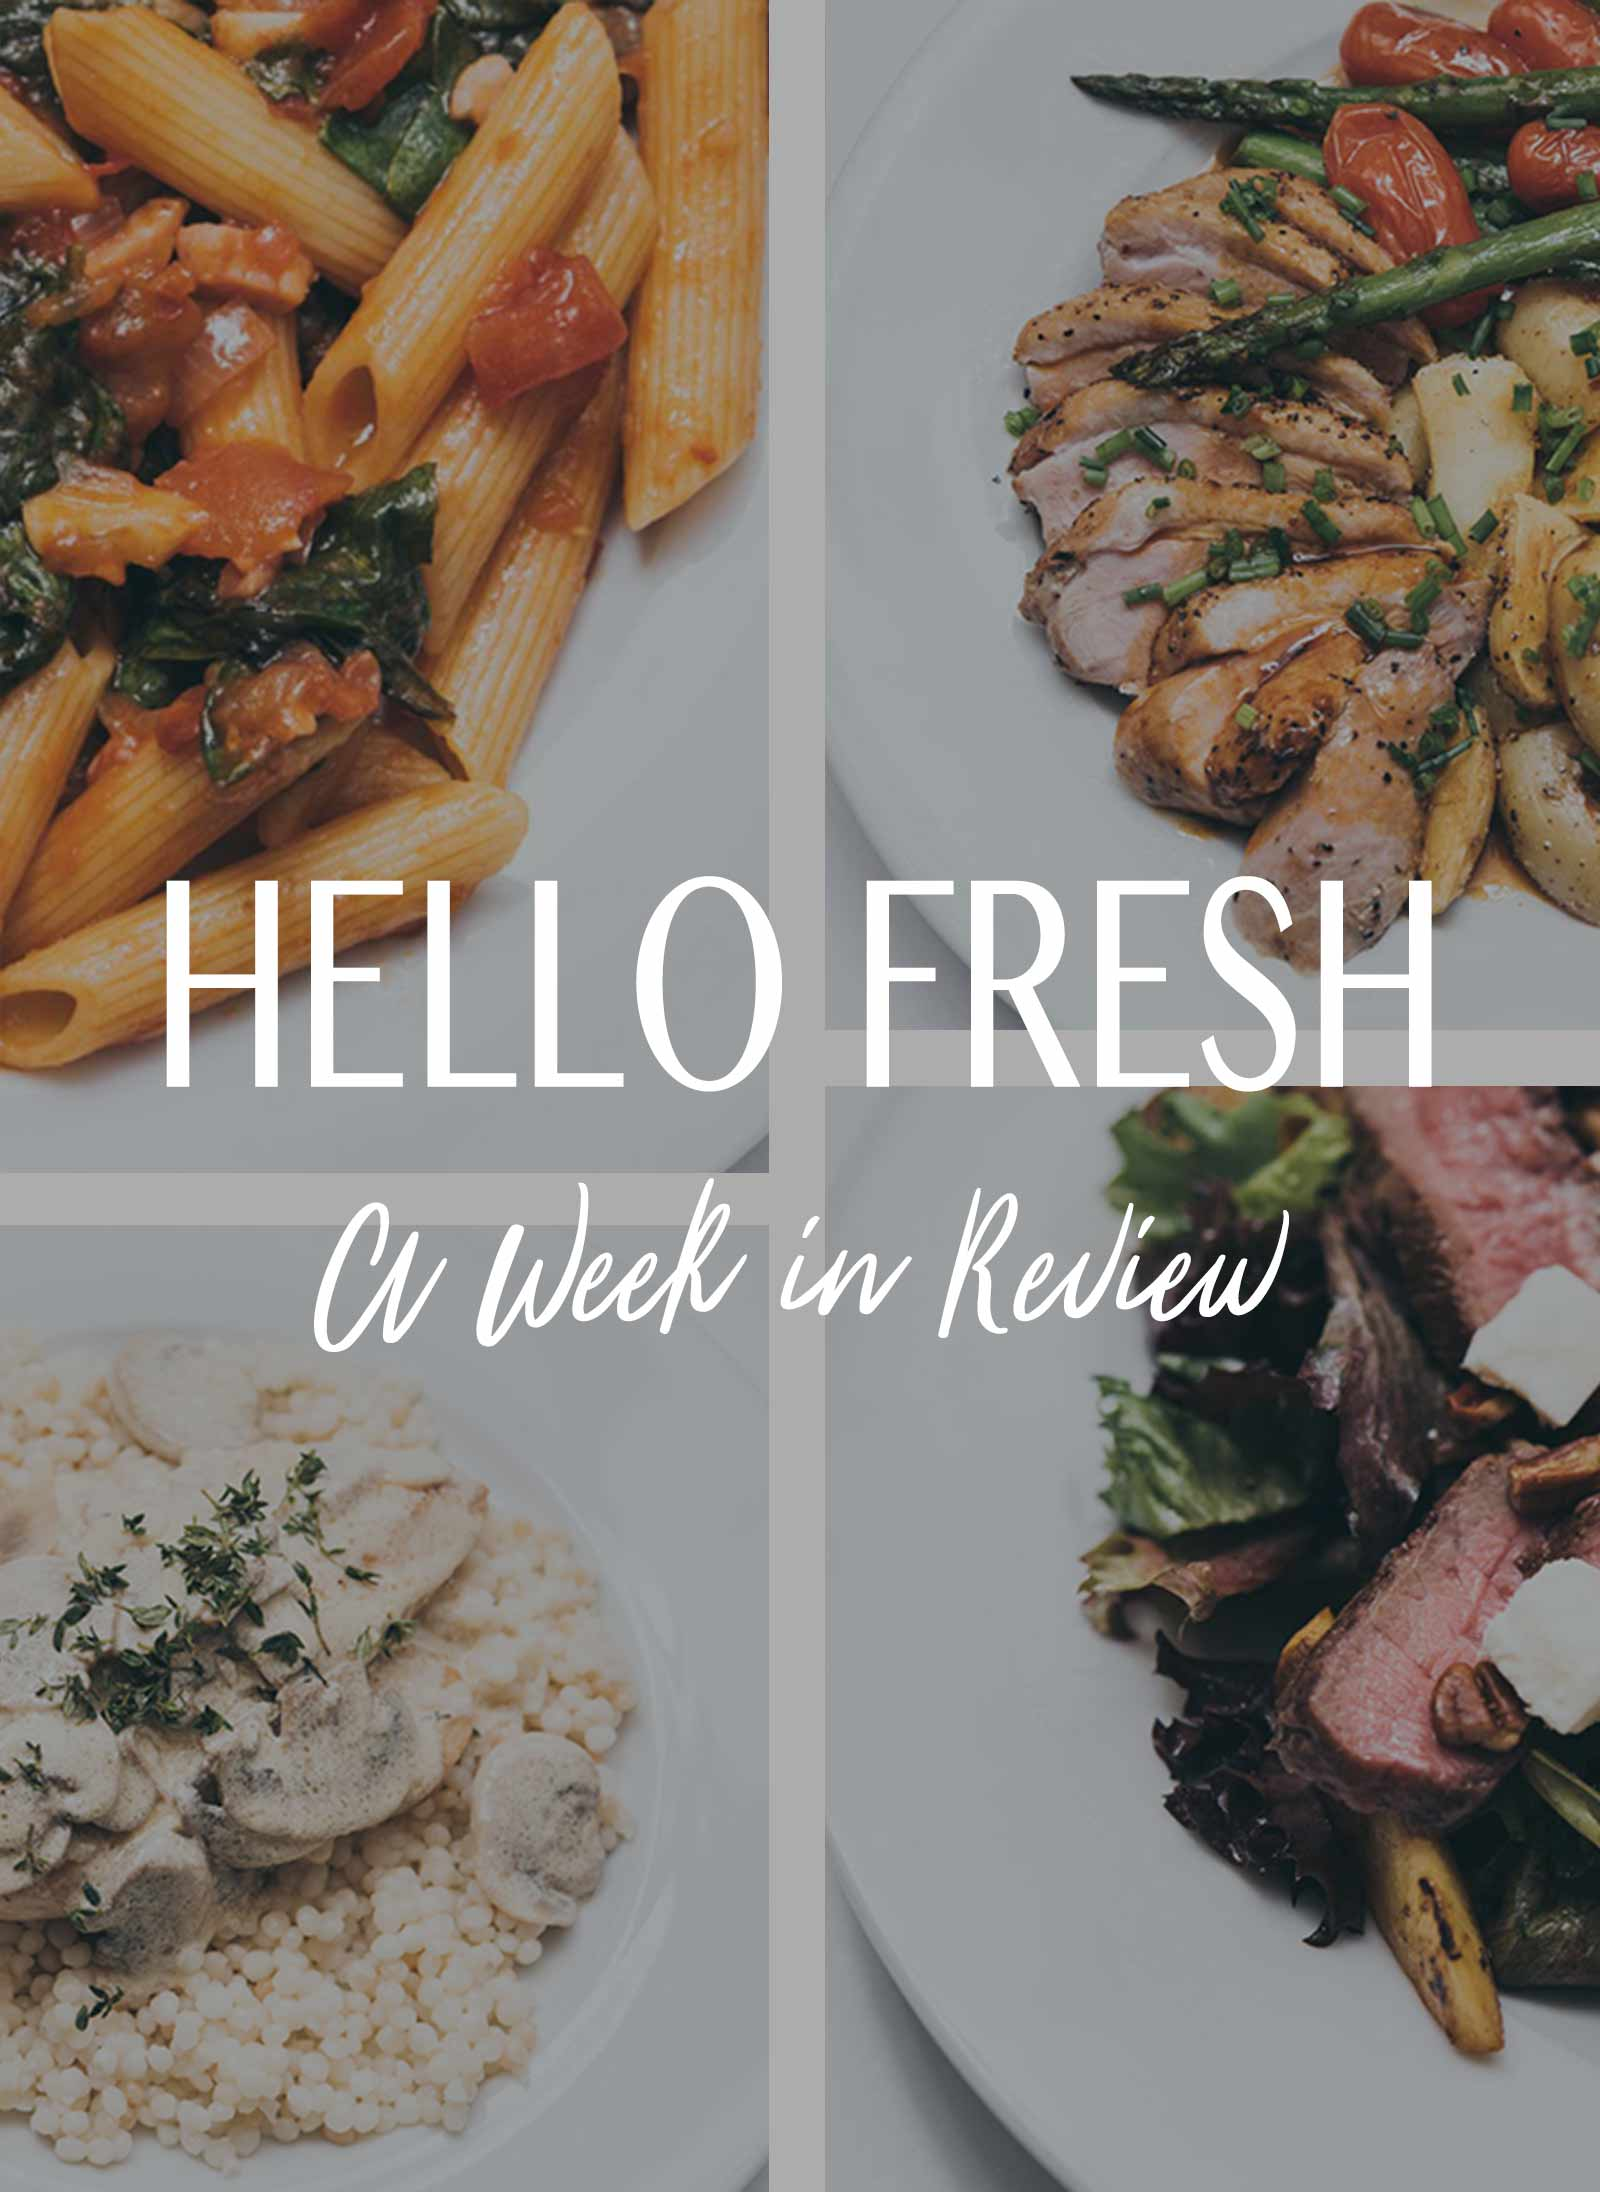 Cheap  Hellofresh Meal Kit Delivery Service Deals